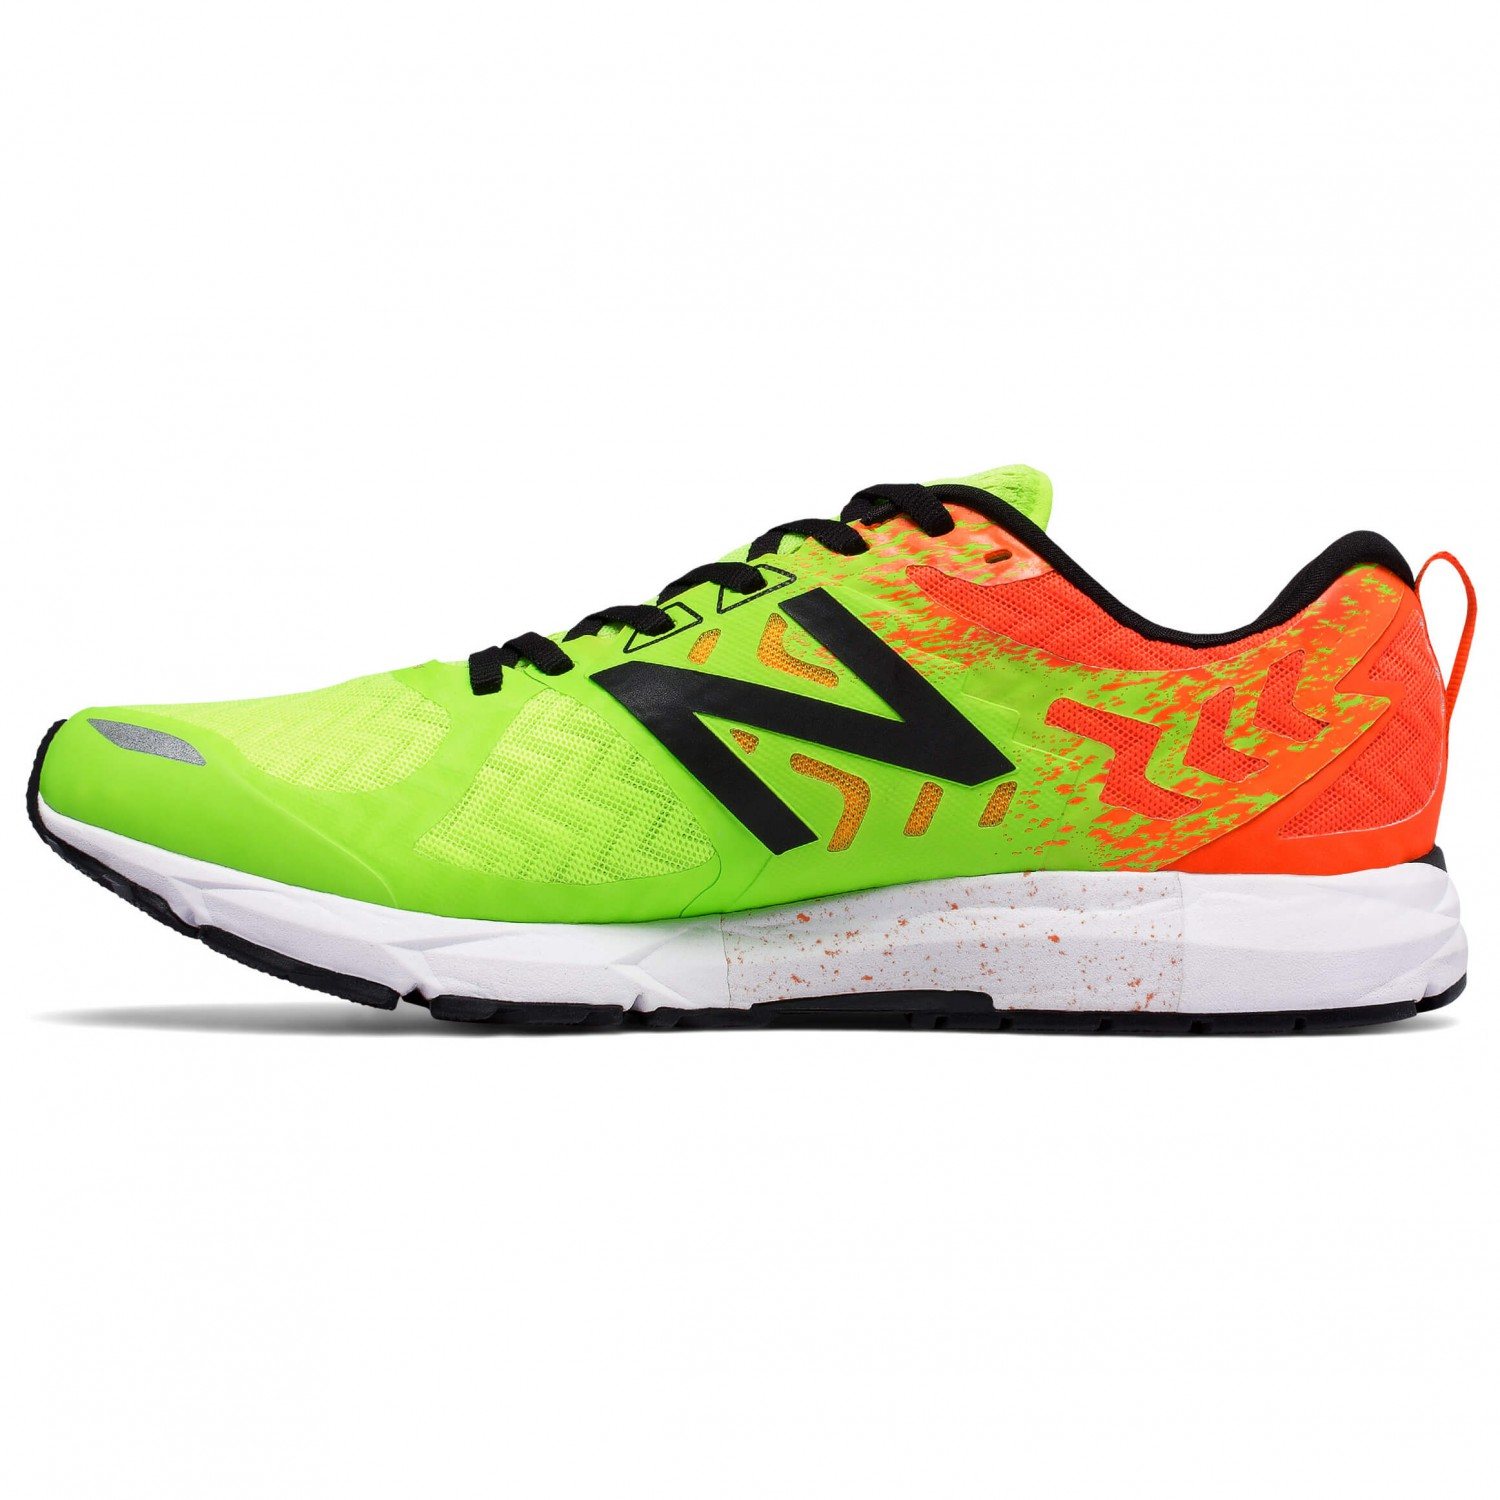 new balance nbx competition 1500 v3